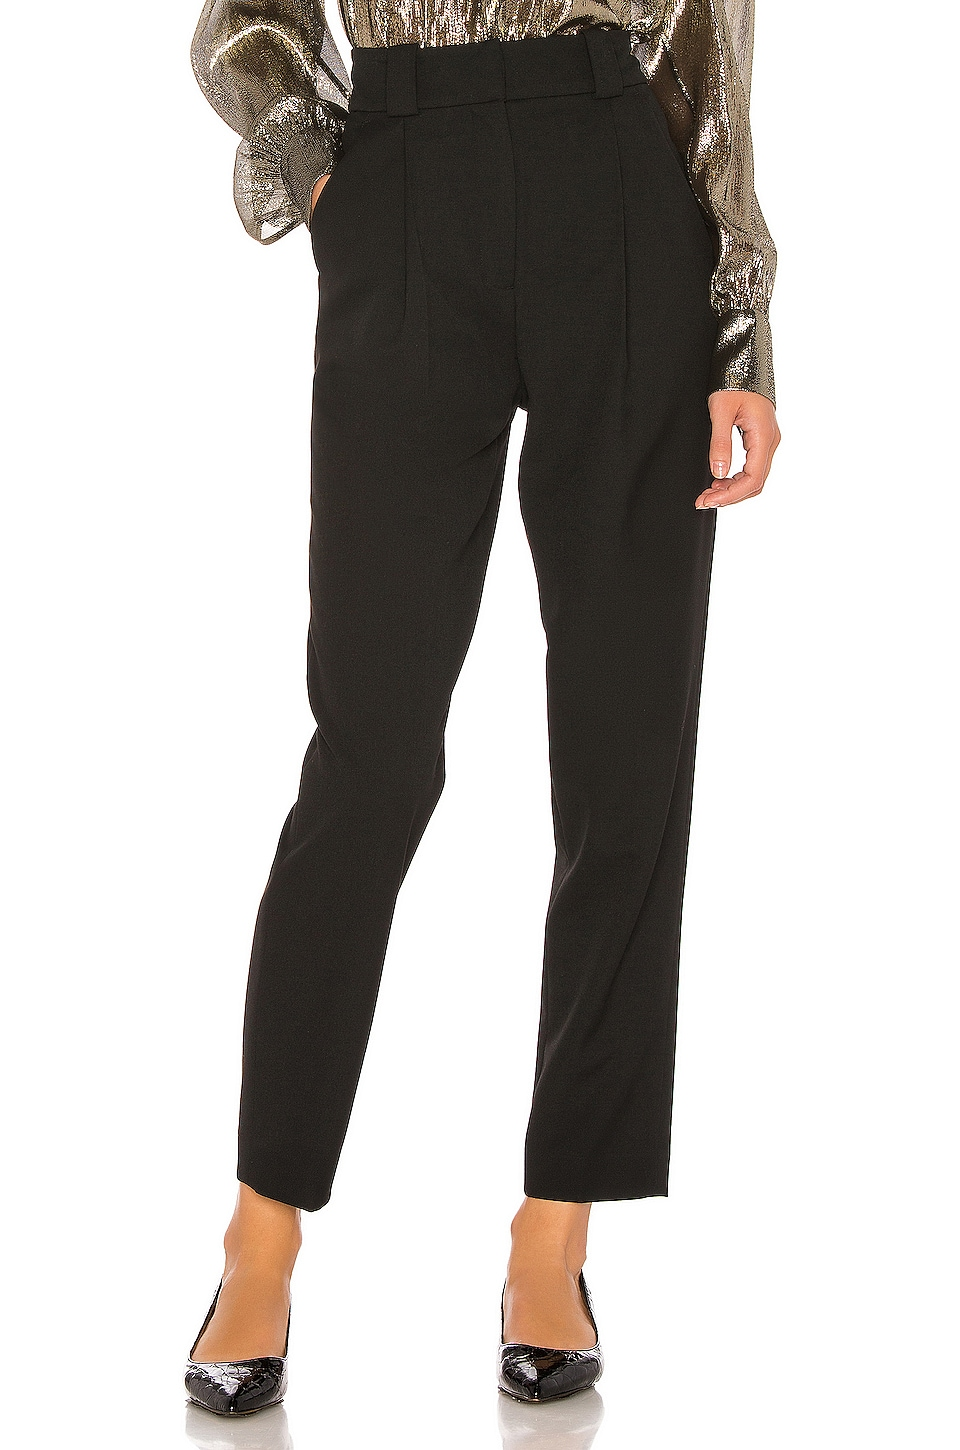 A.L.C. Colin Pant in Black